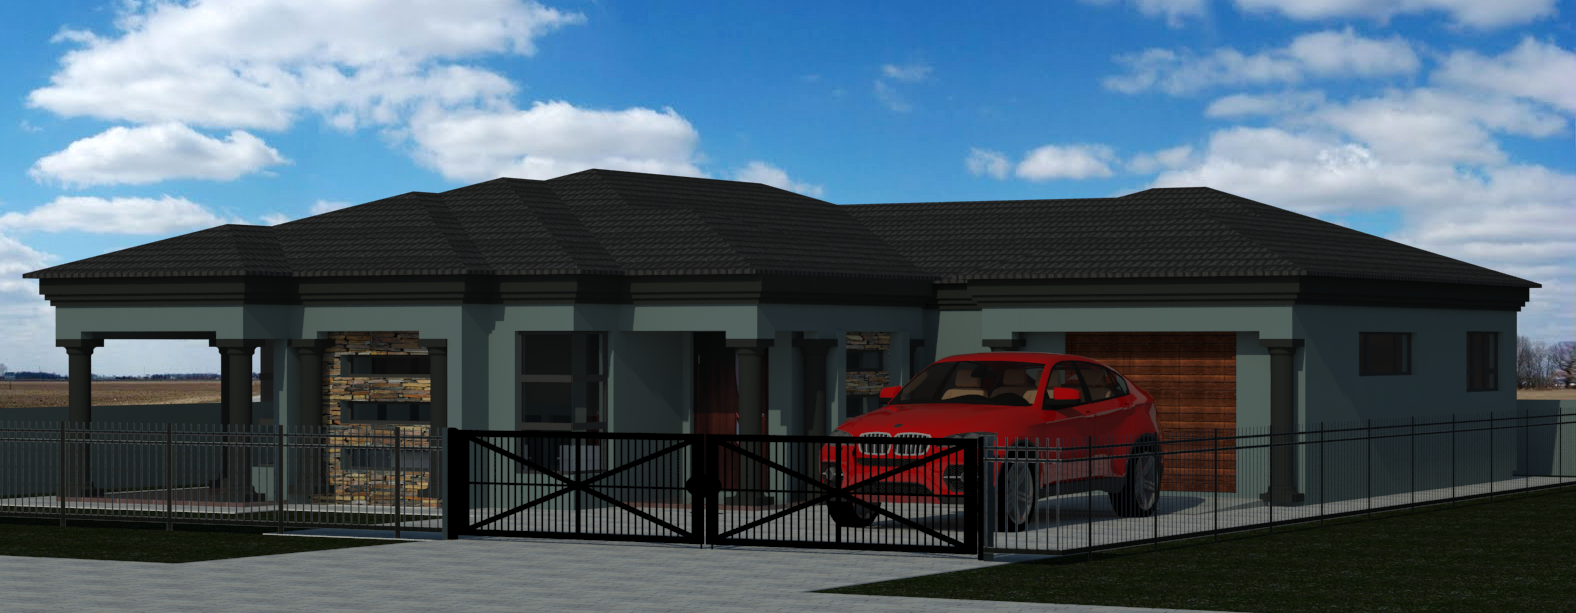 3 Bedroom House Plan Mlb 014 1 House Plans South Africa Tuscan House Plans Tuscan House